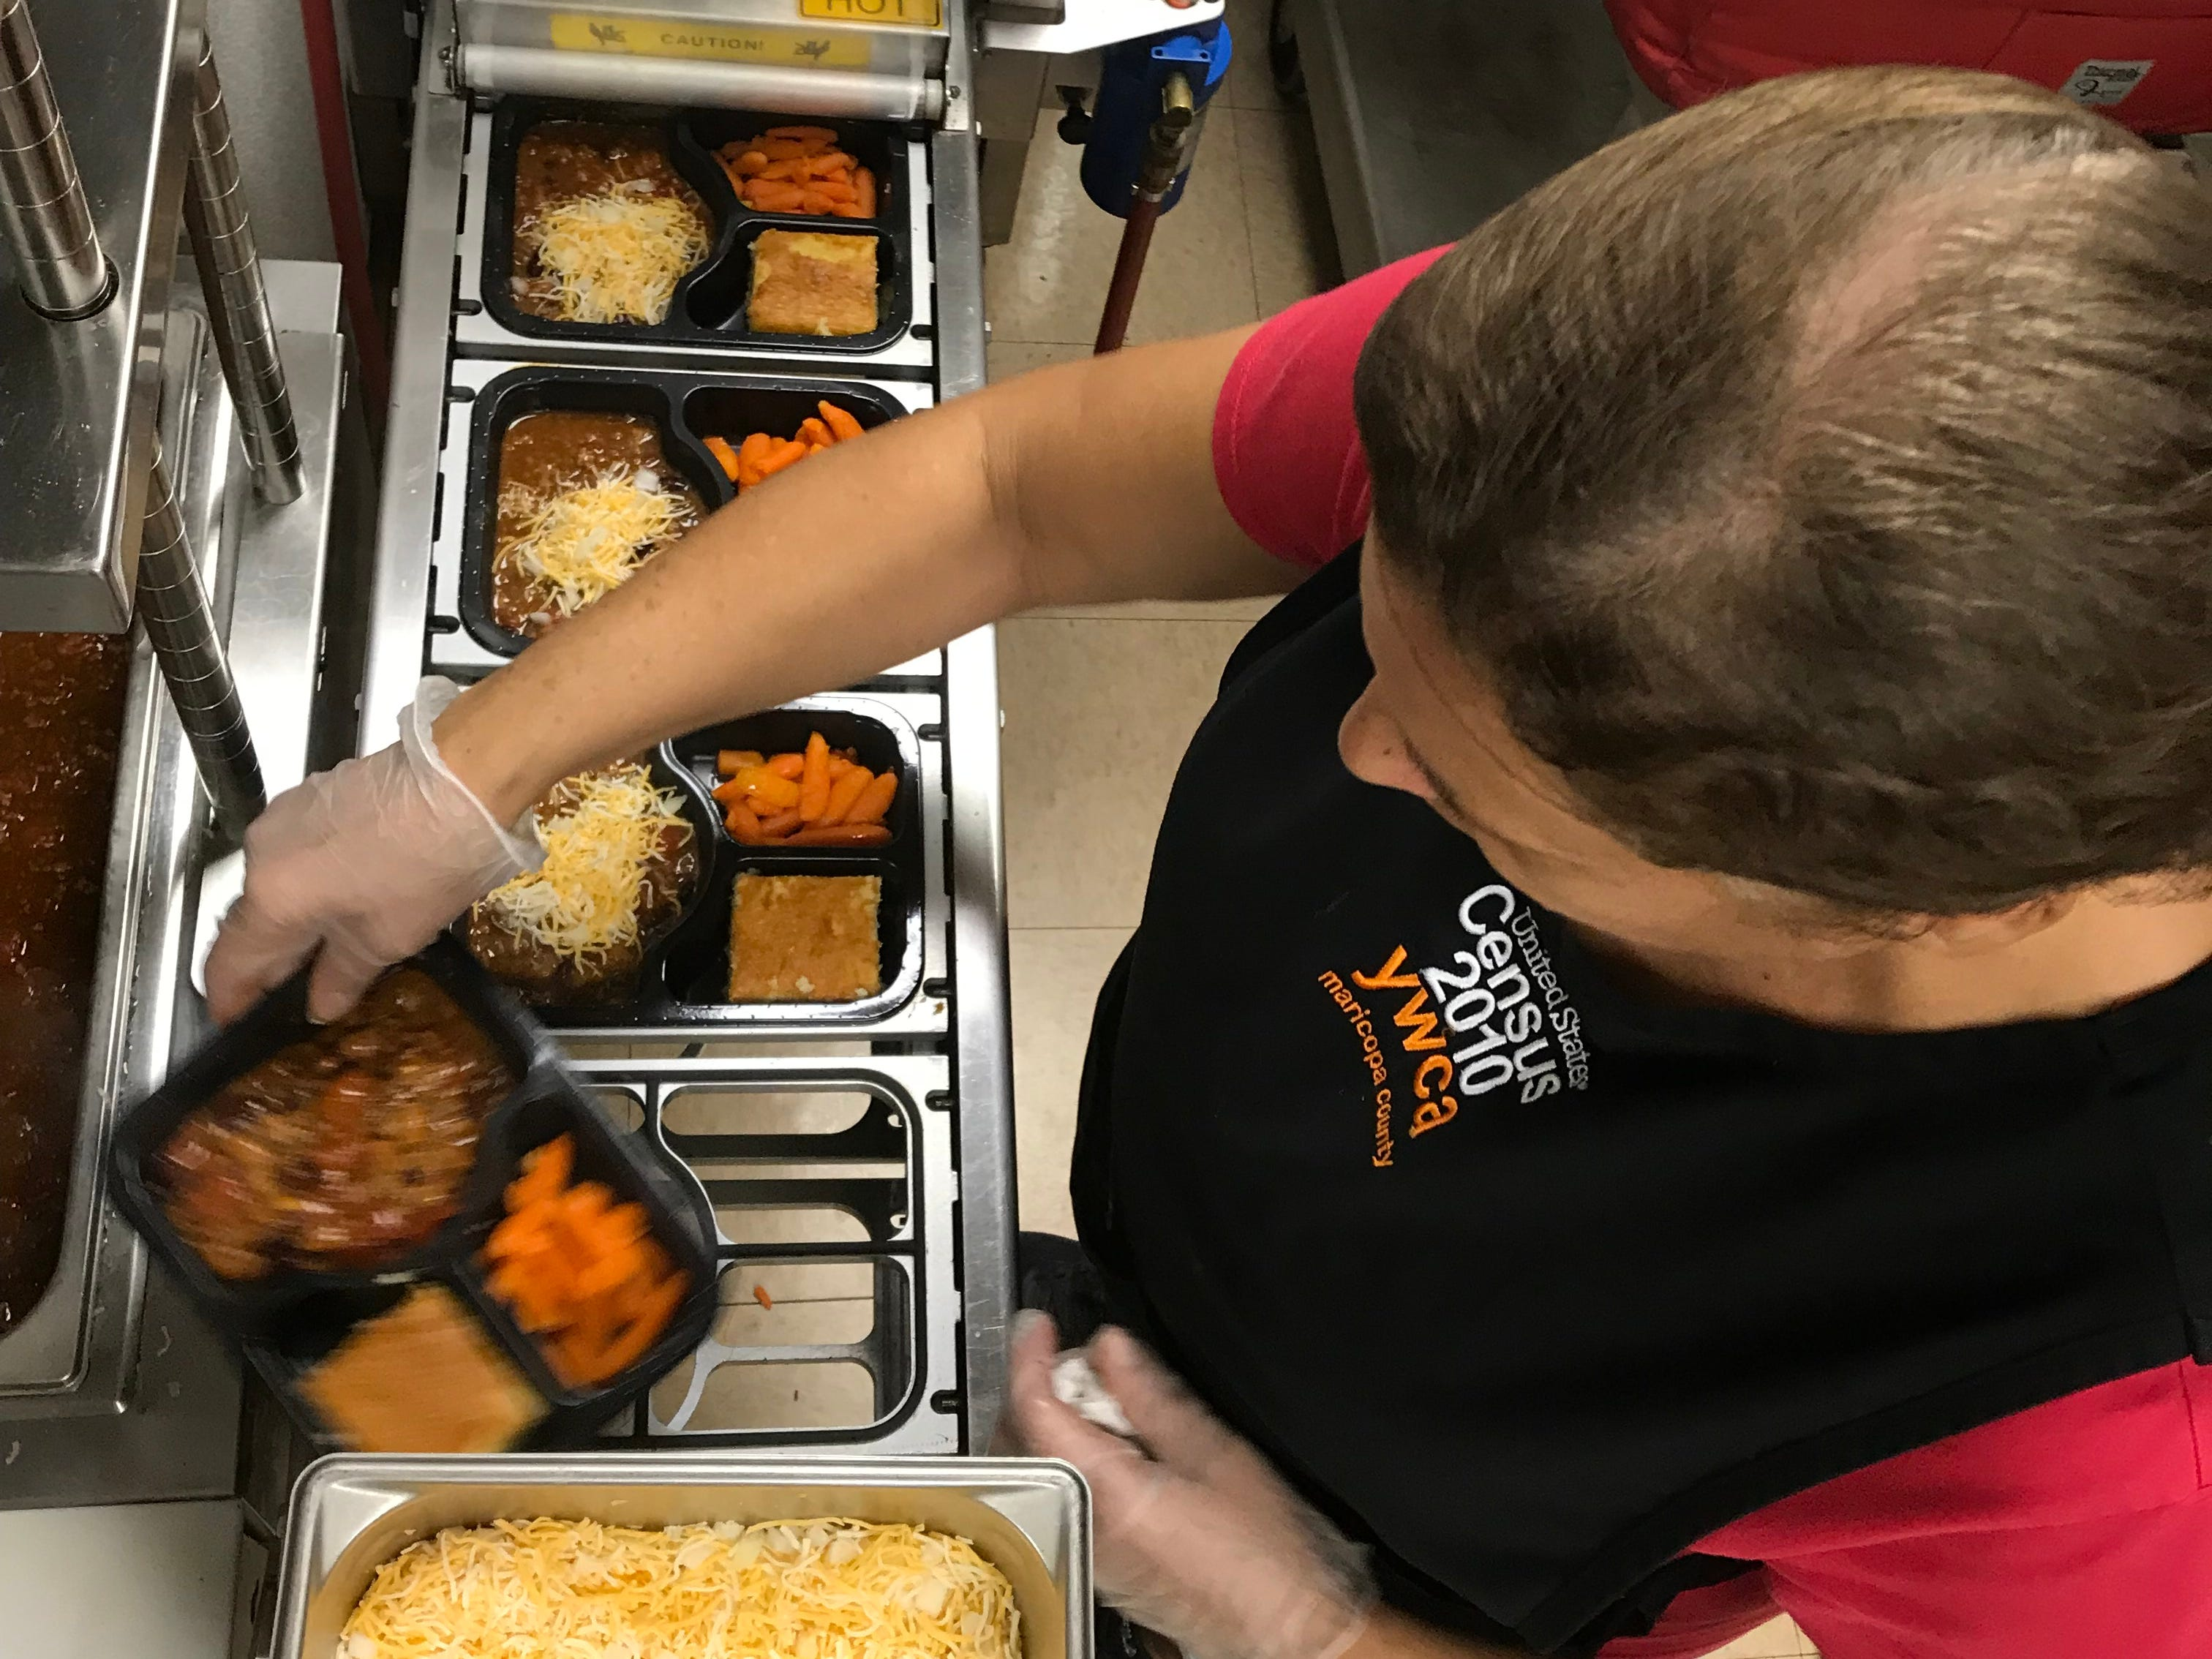 A worker assembles the hot meal and sends the trays through a machine that seals each tray in plastic wrap.